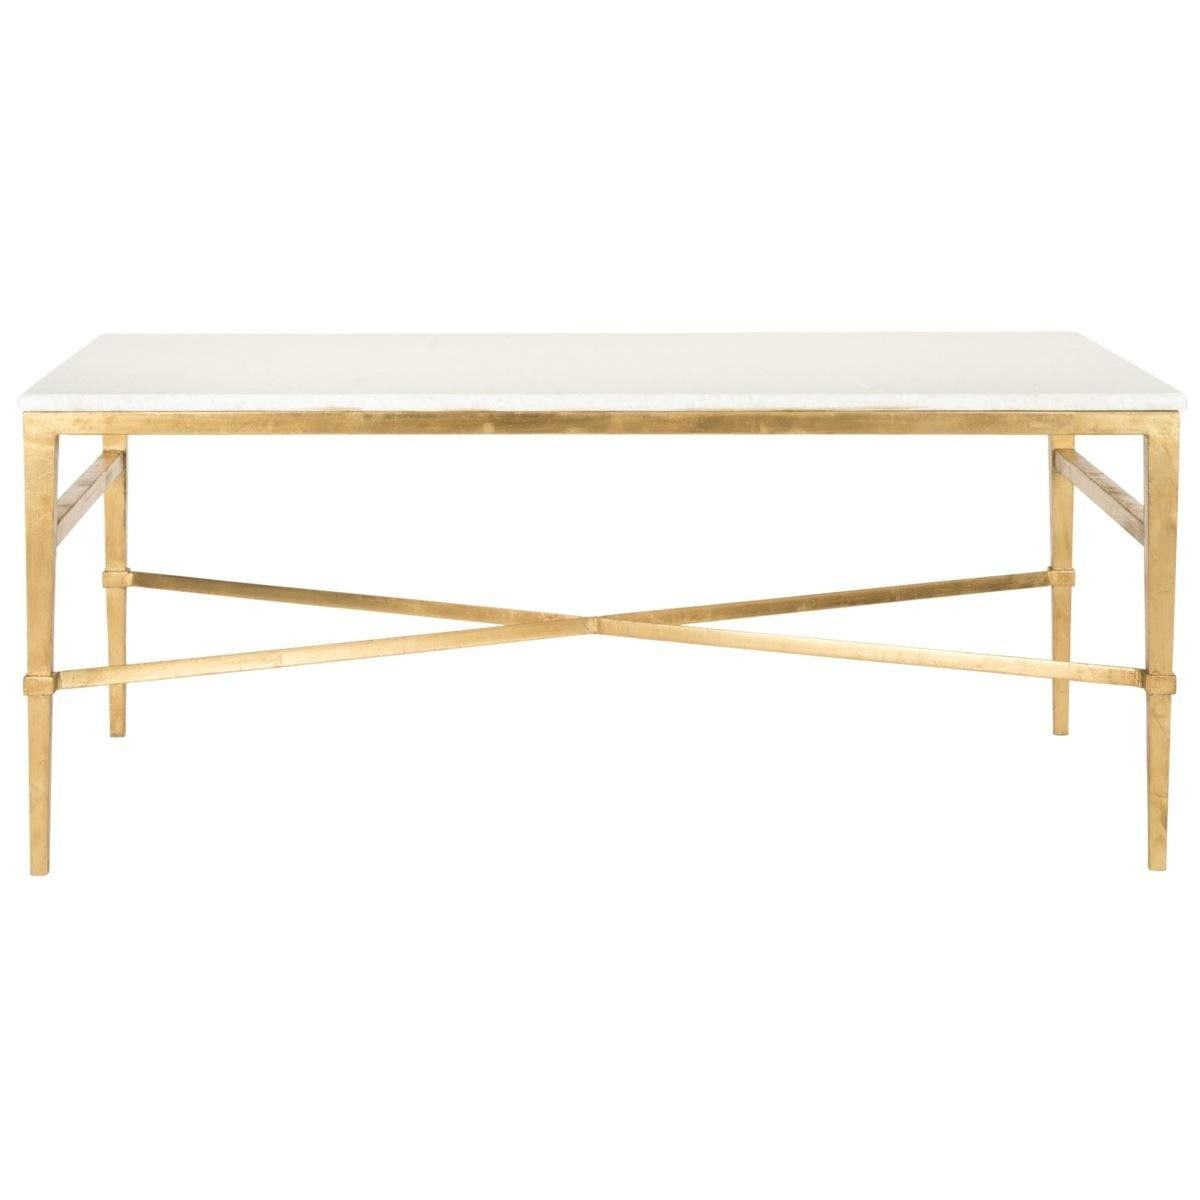 The Well Appointed House Gold Leaf Cocktail Table with White Marble